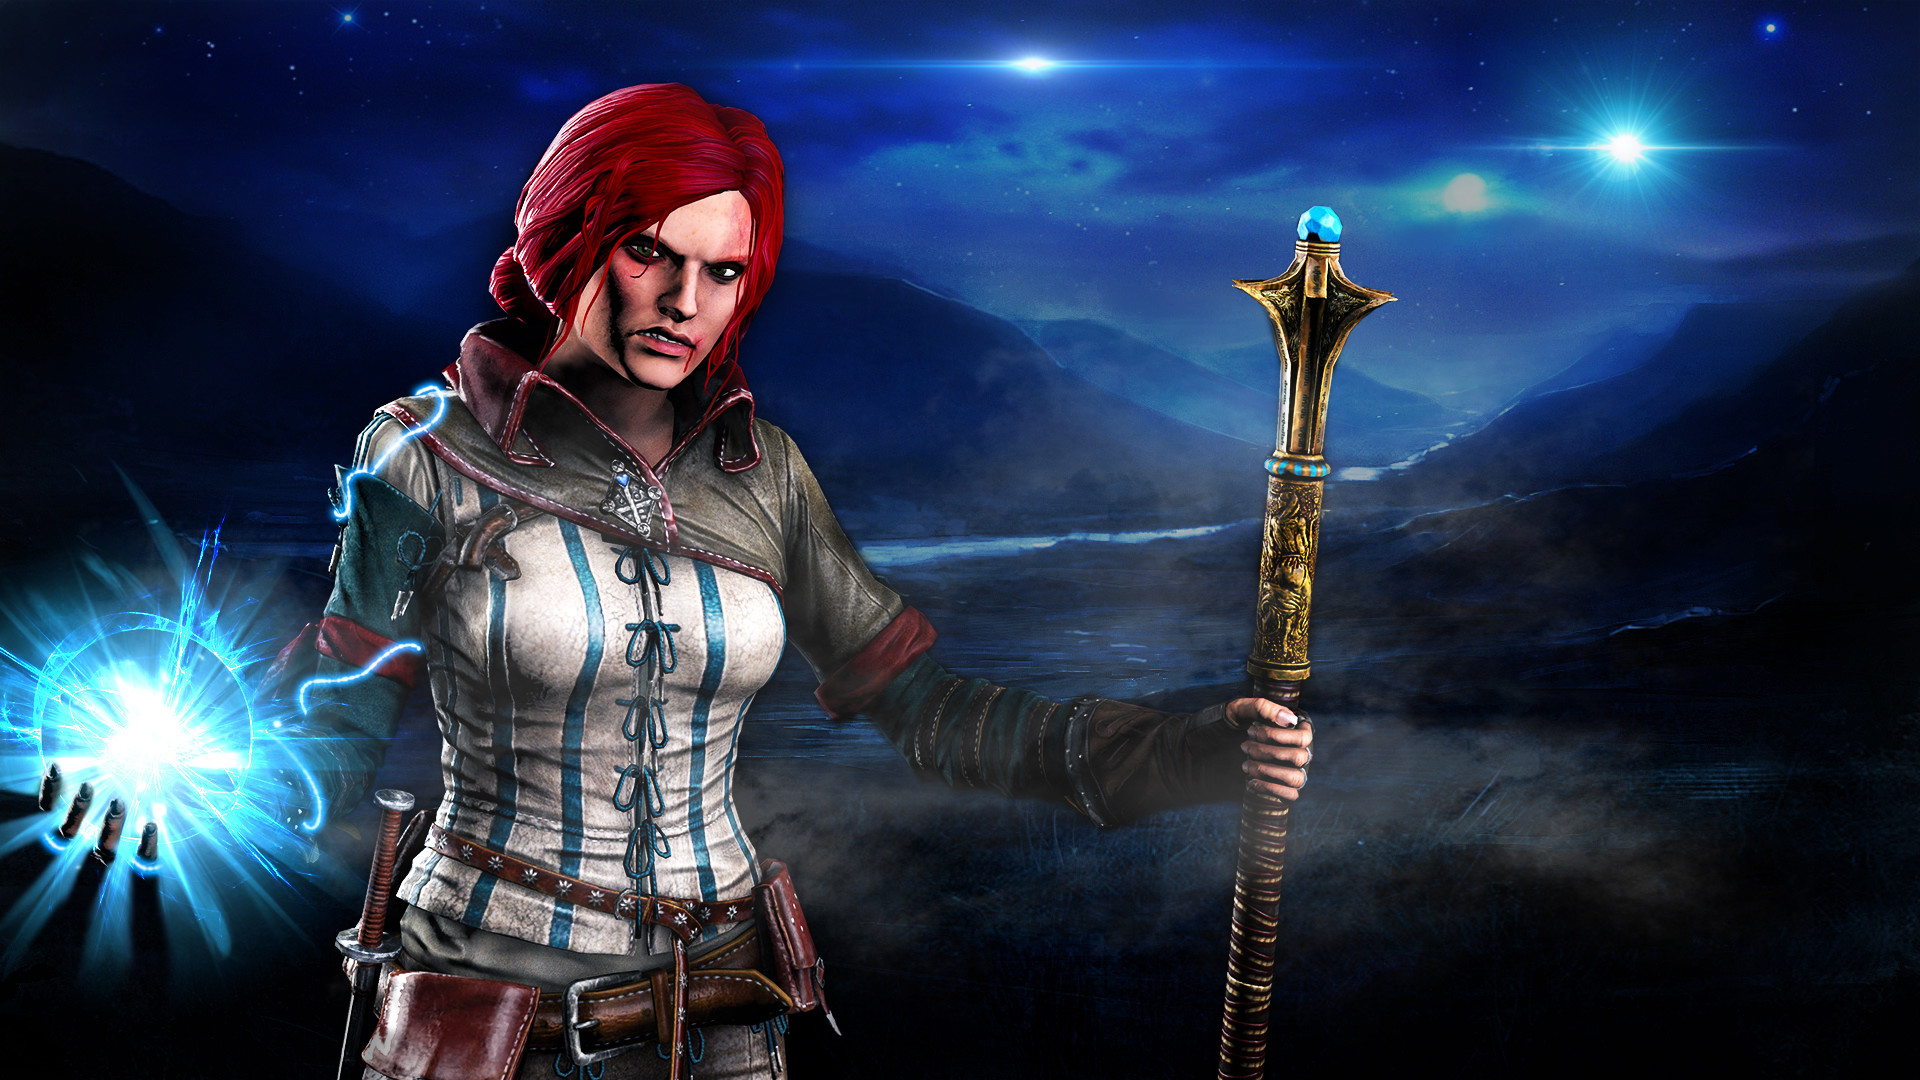 Res: 1920x1080, Triss Merigold by GeneralYobo Triss Merigold by GeneralYobo